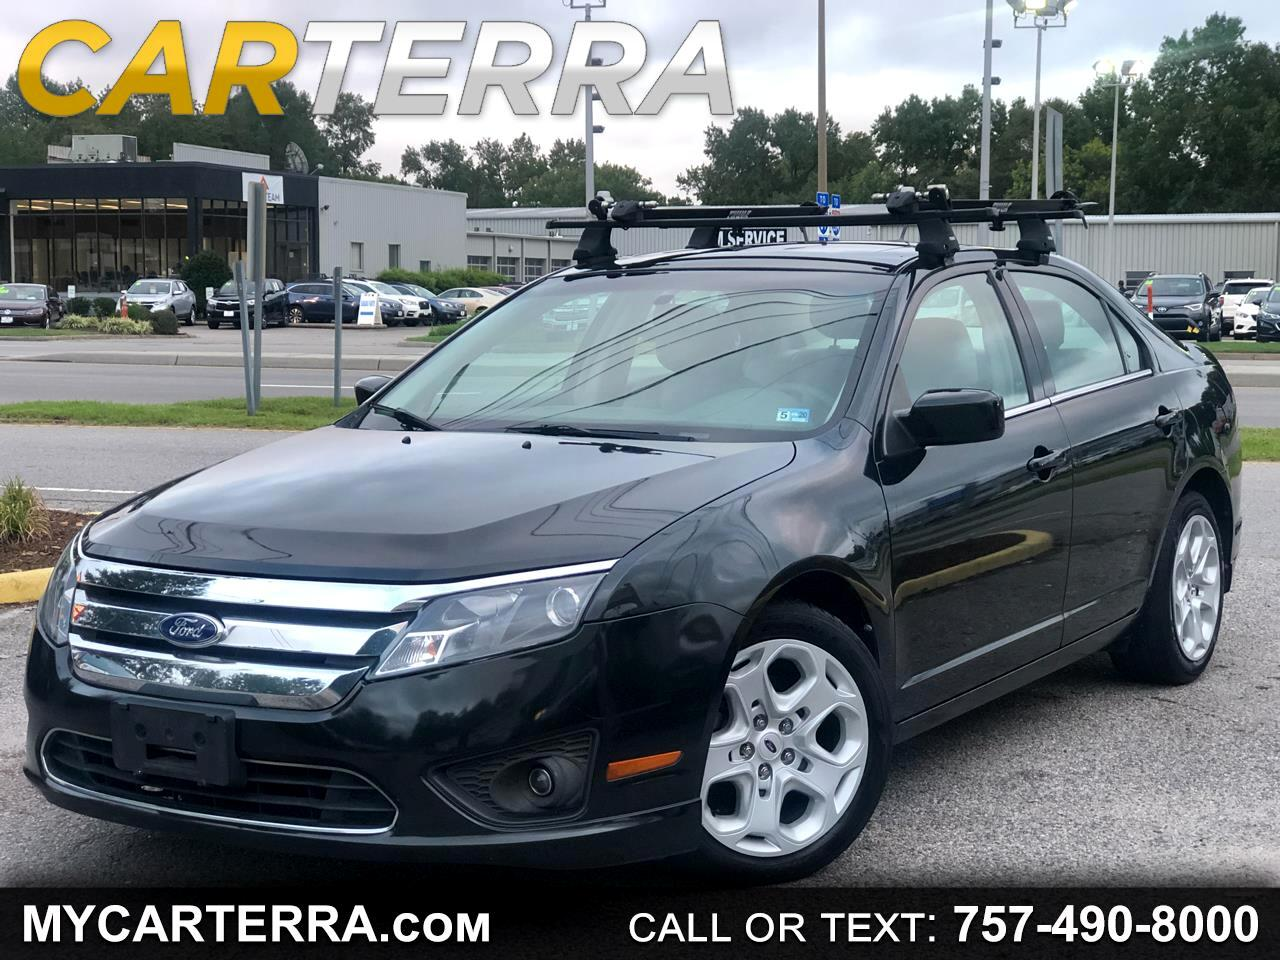 2011 Ford Fusion 4dr Sdn I4 SE FWD